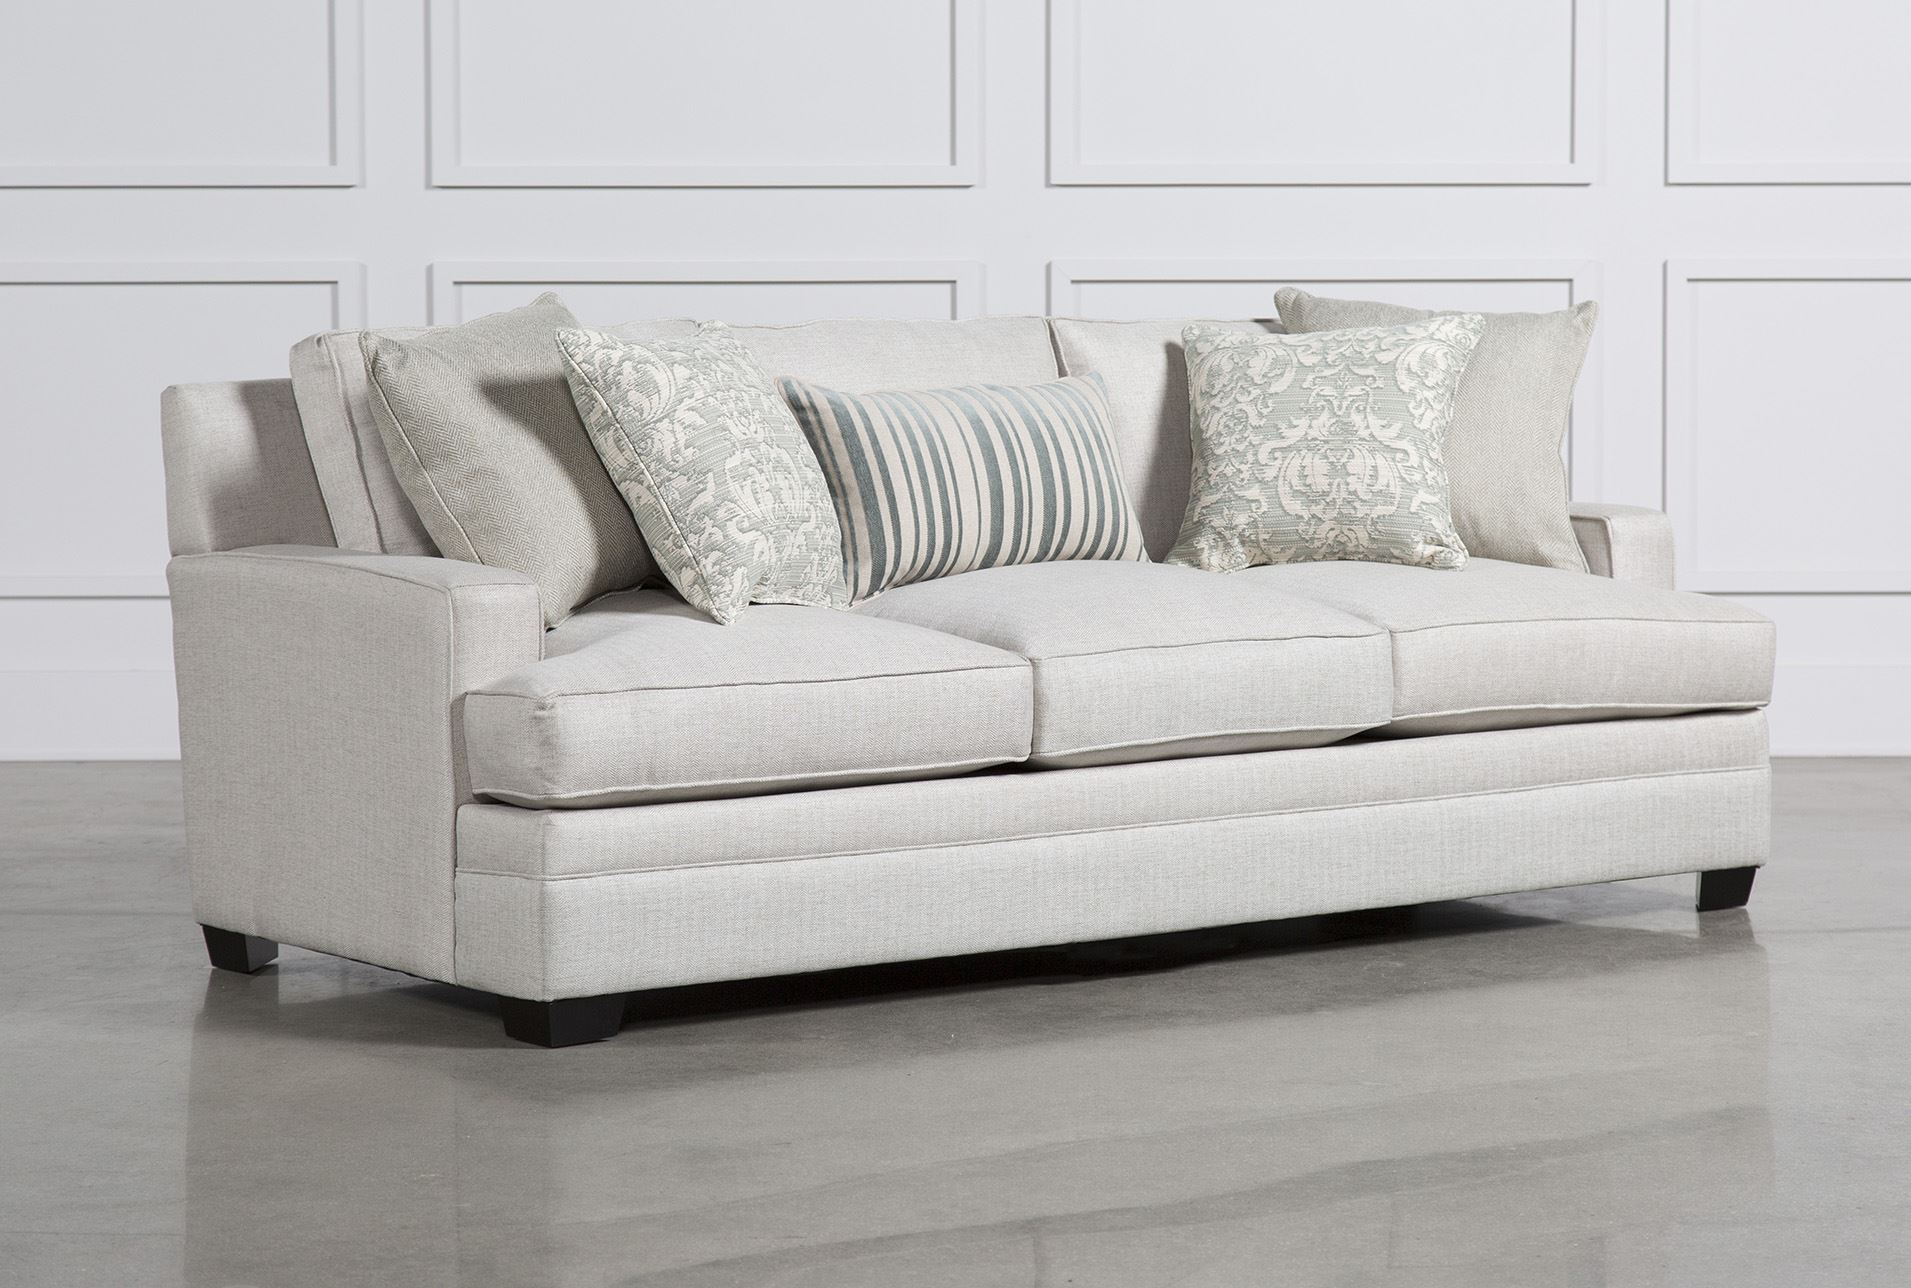 Perfect Sofa Living Spaces 28 For Modern Sofa Ideas with Sofa Living Spaces